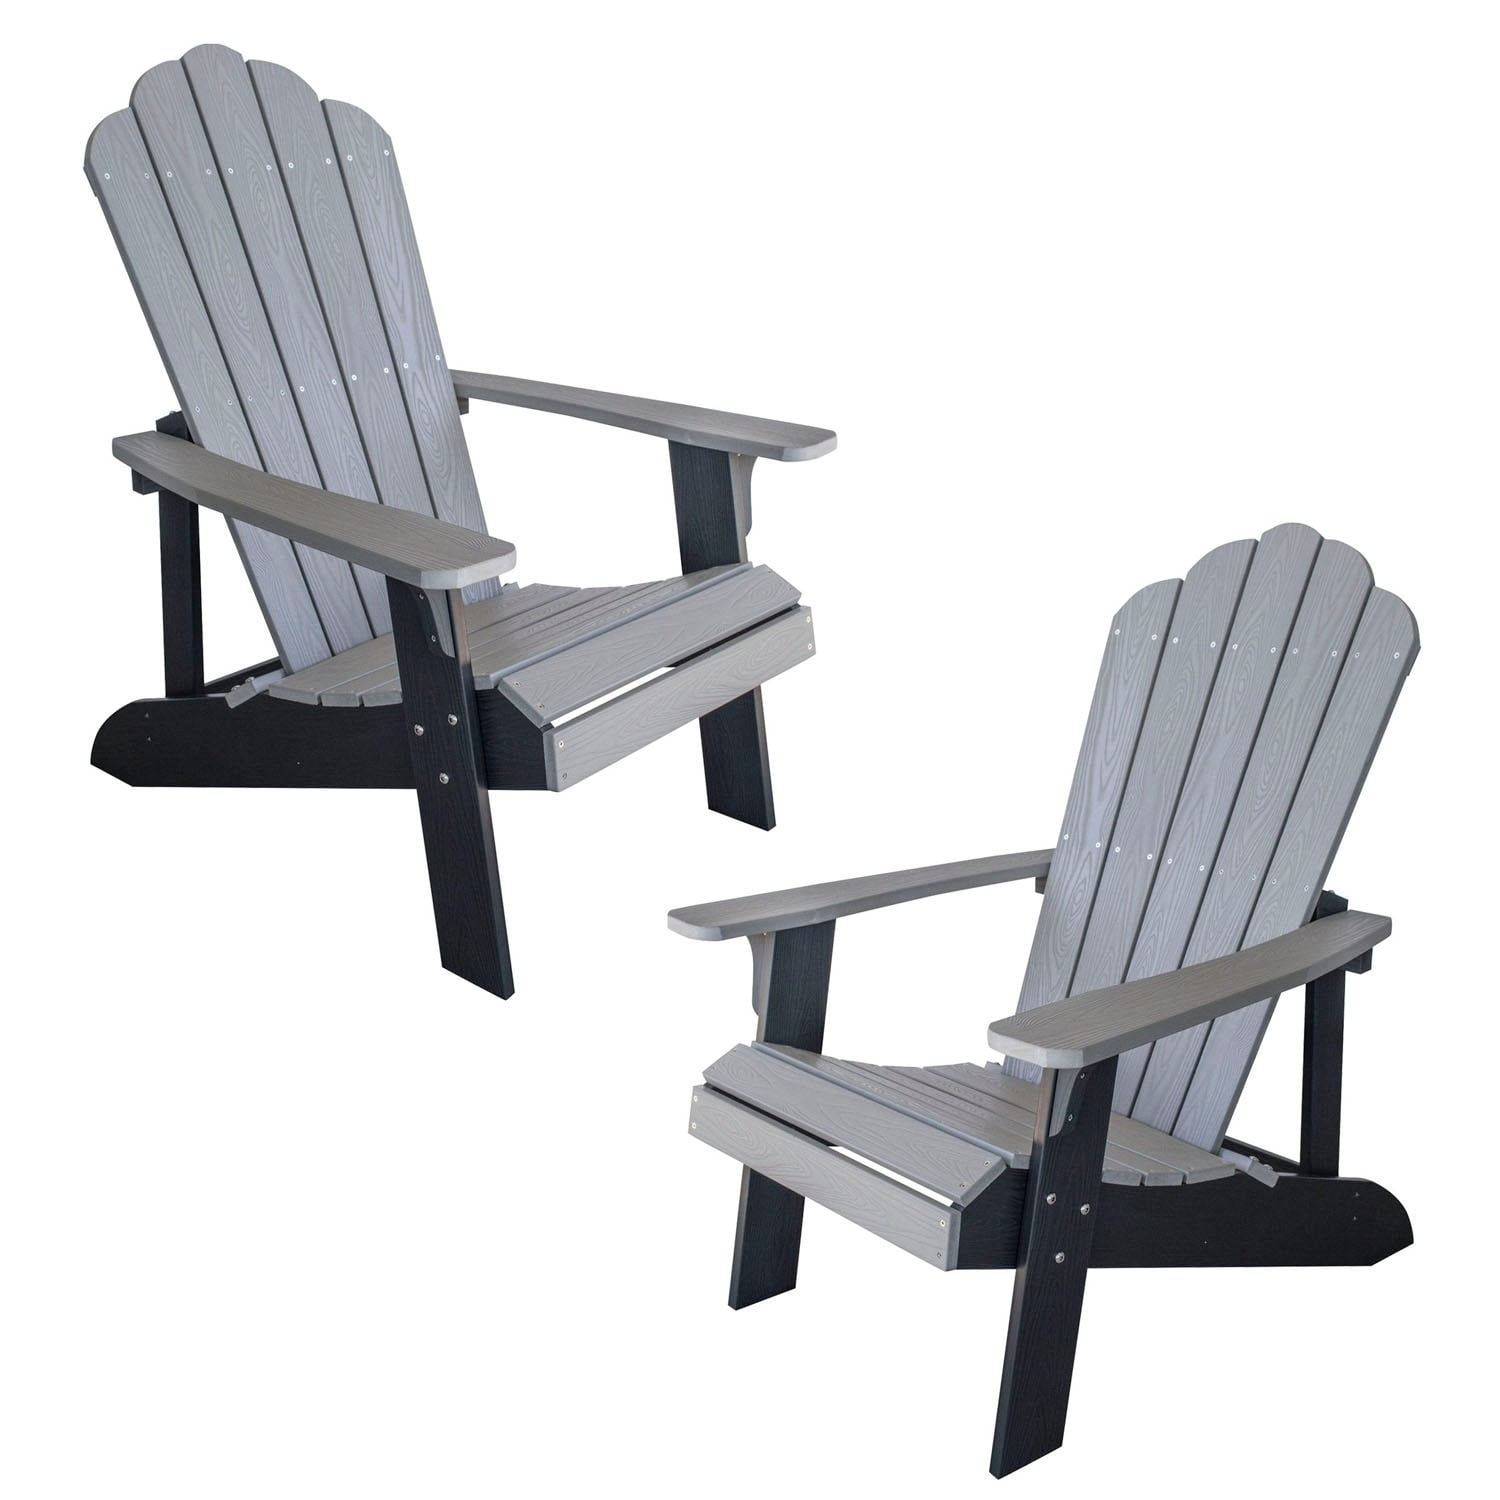 Remarkable Offex Simulated Wood Outdoor 2 Tone Adirondack Chair Gray With Black Accents 2 Piece Set Gamerscity Chair Design For Home Gamerscityorg